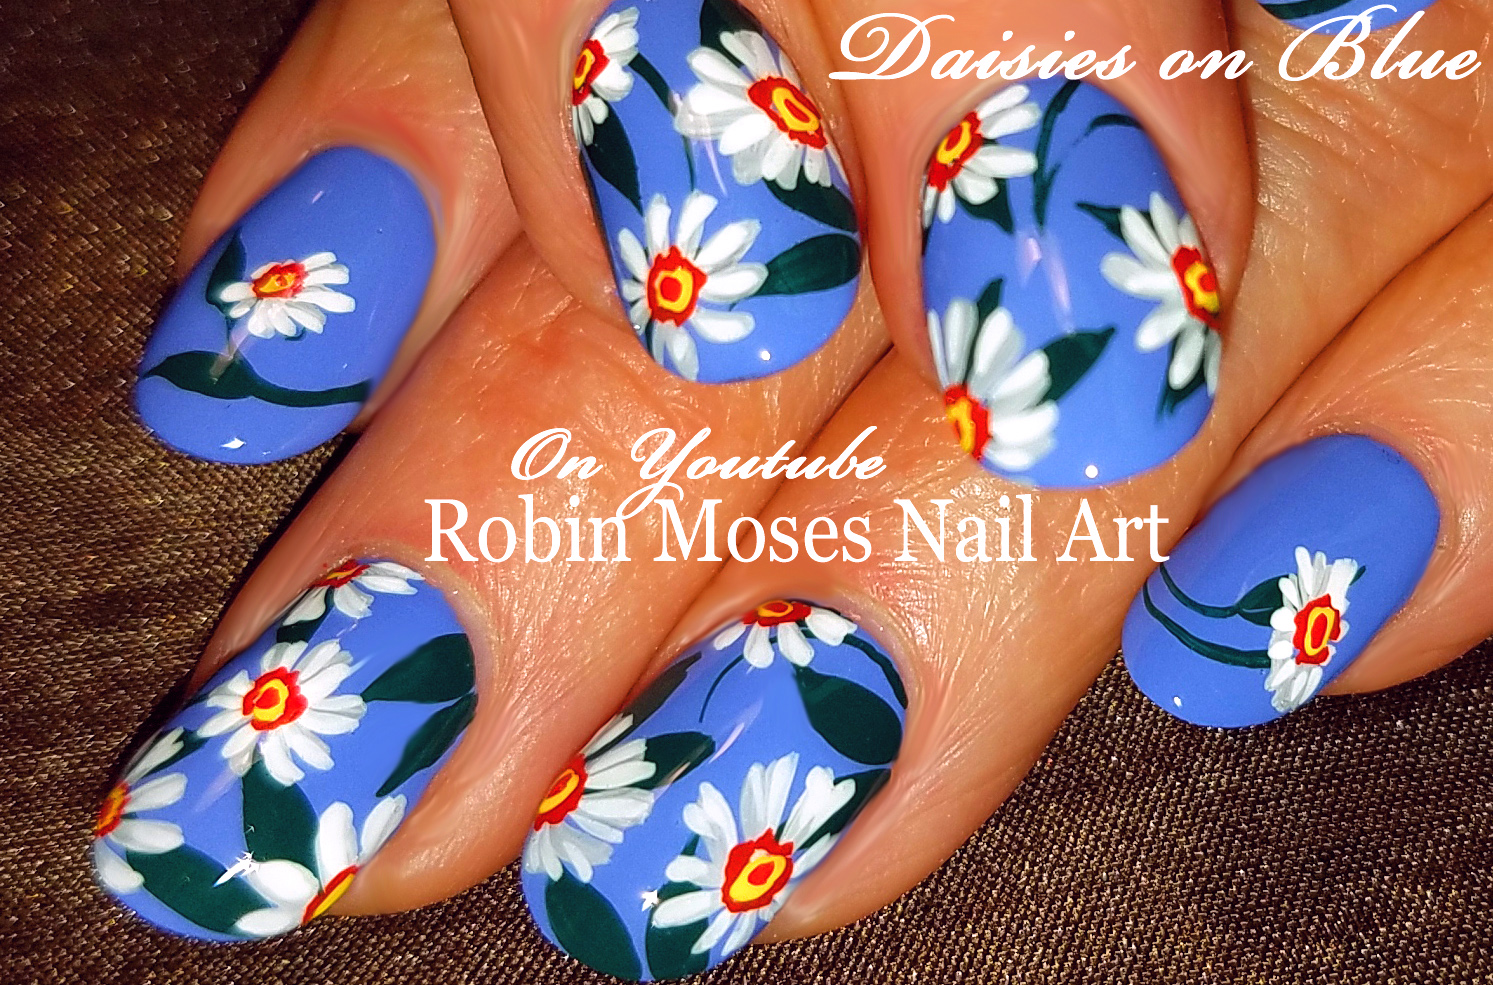 Nail Art By Robin Moses 42 Daisy Nail Art Designs In My New Daisies